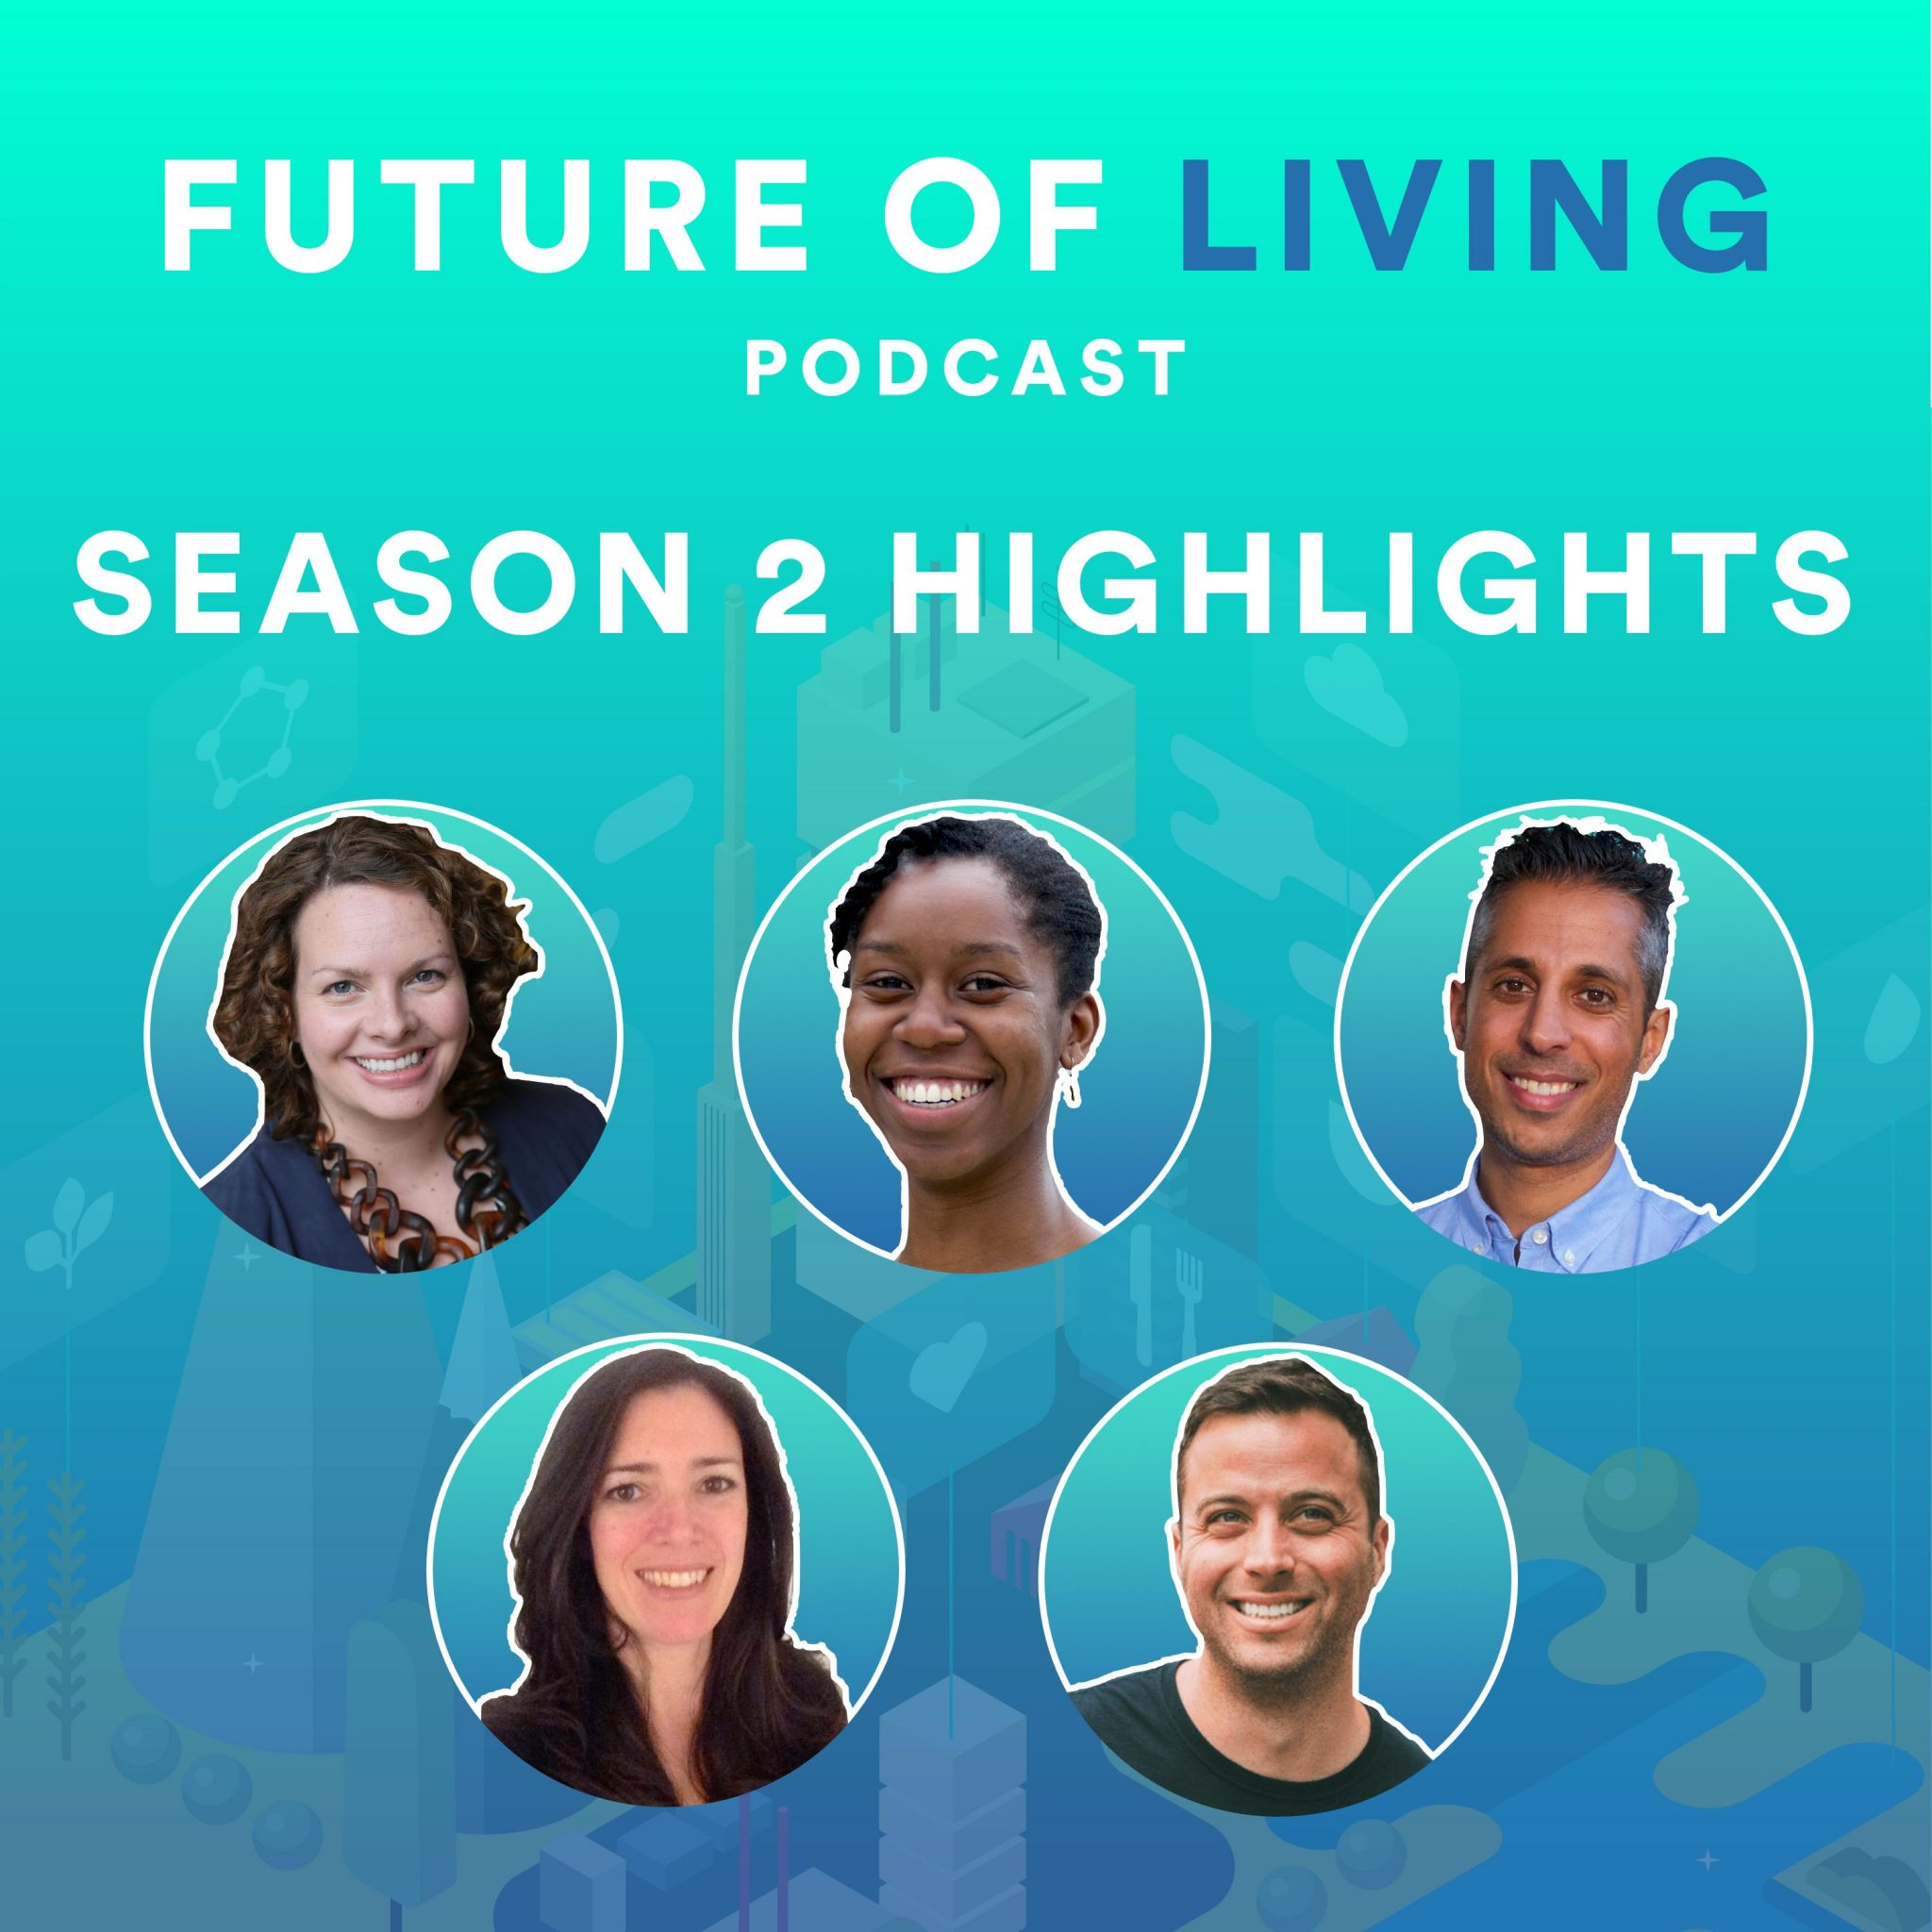 The Future of Living Podcast with Blake Miller Season 2 Highlights